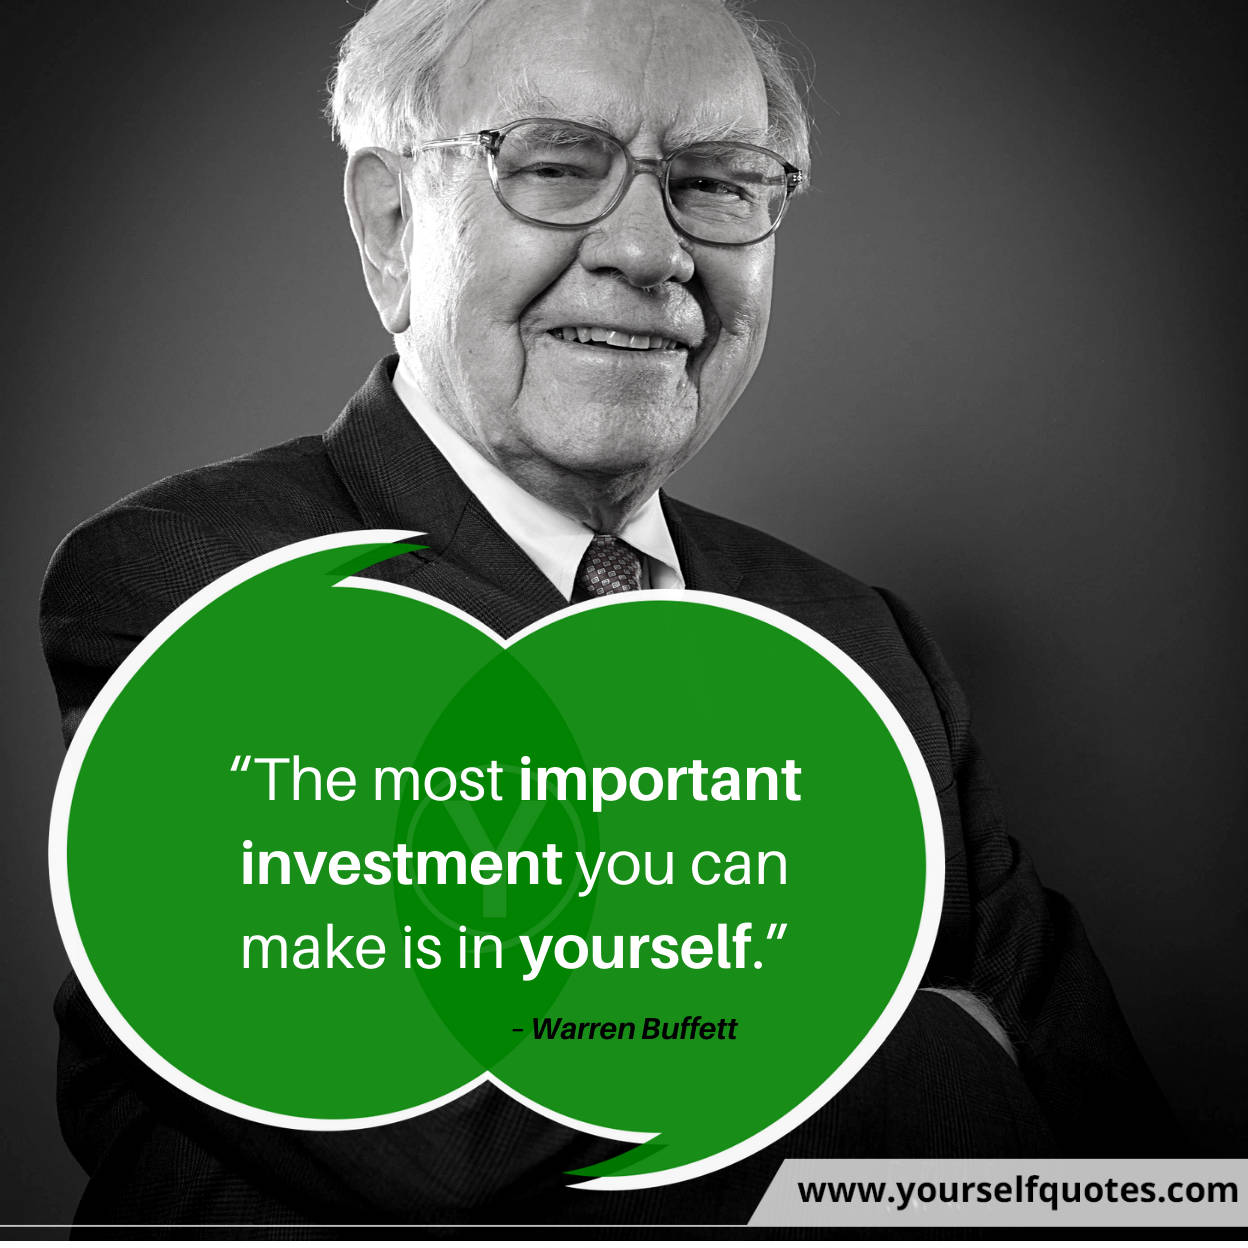 Warren Buffett Investment Quotes